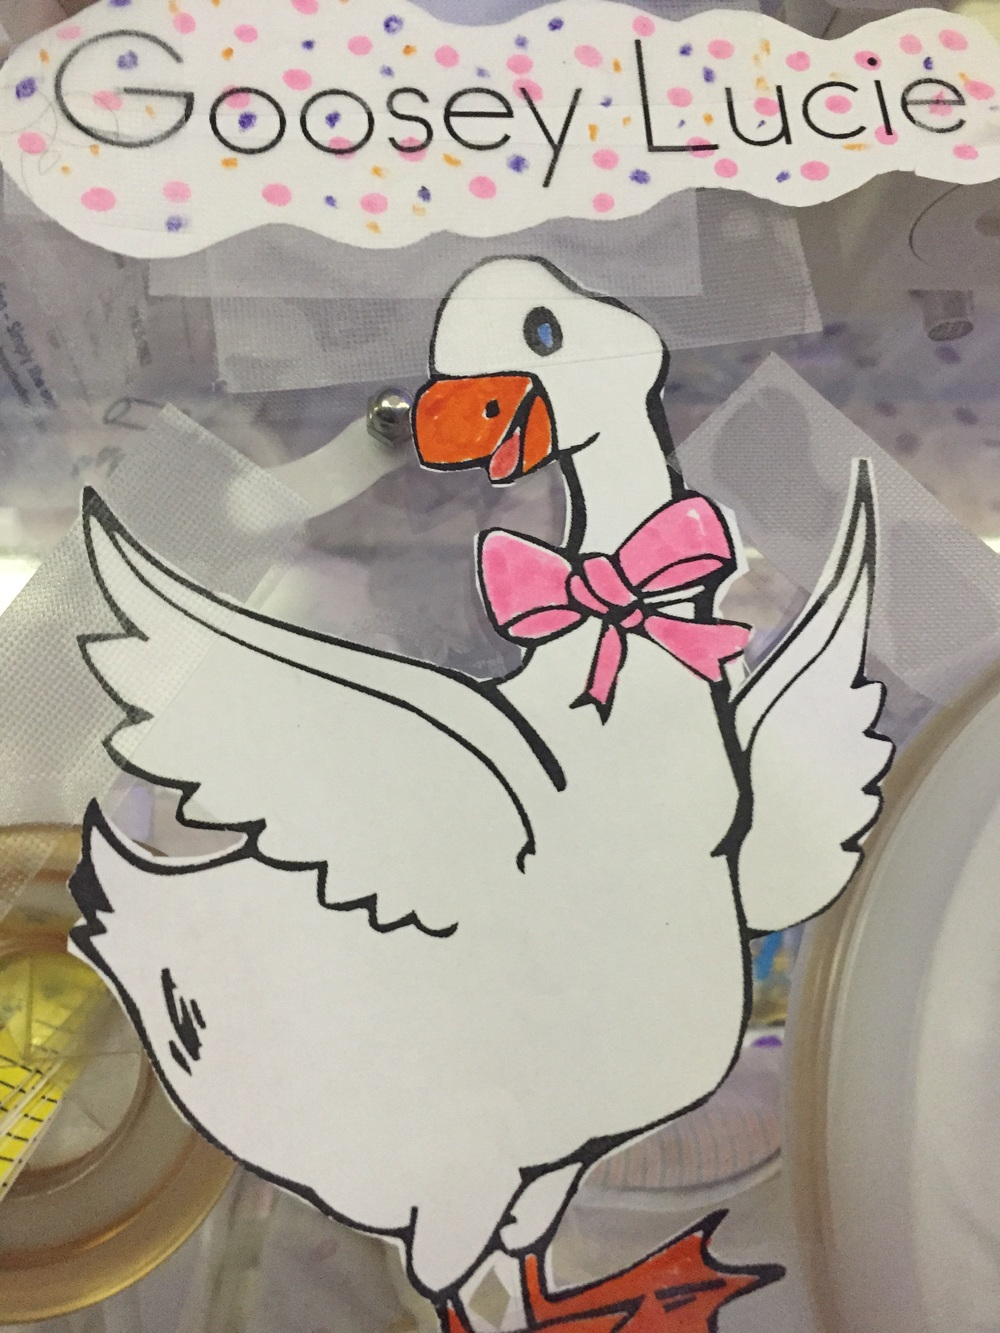 Goosey Lucie decor from Lucie' favorite nurse :)